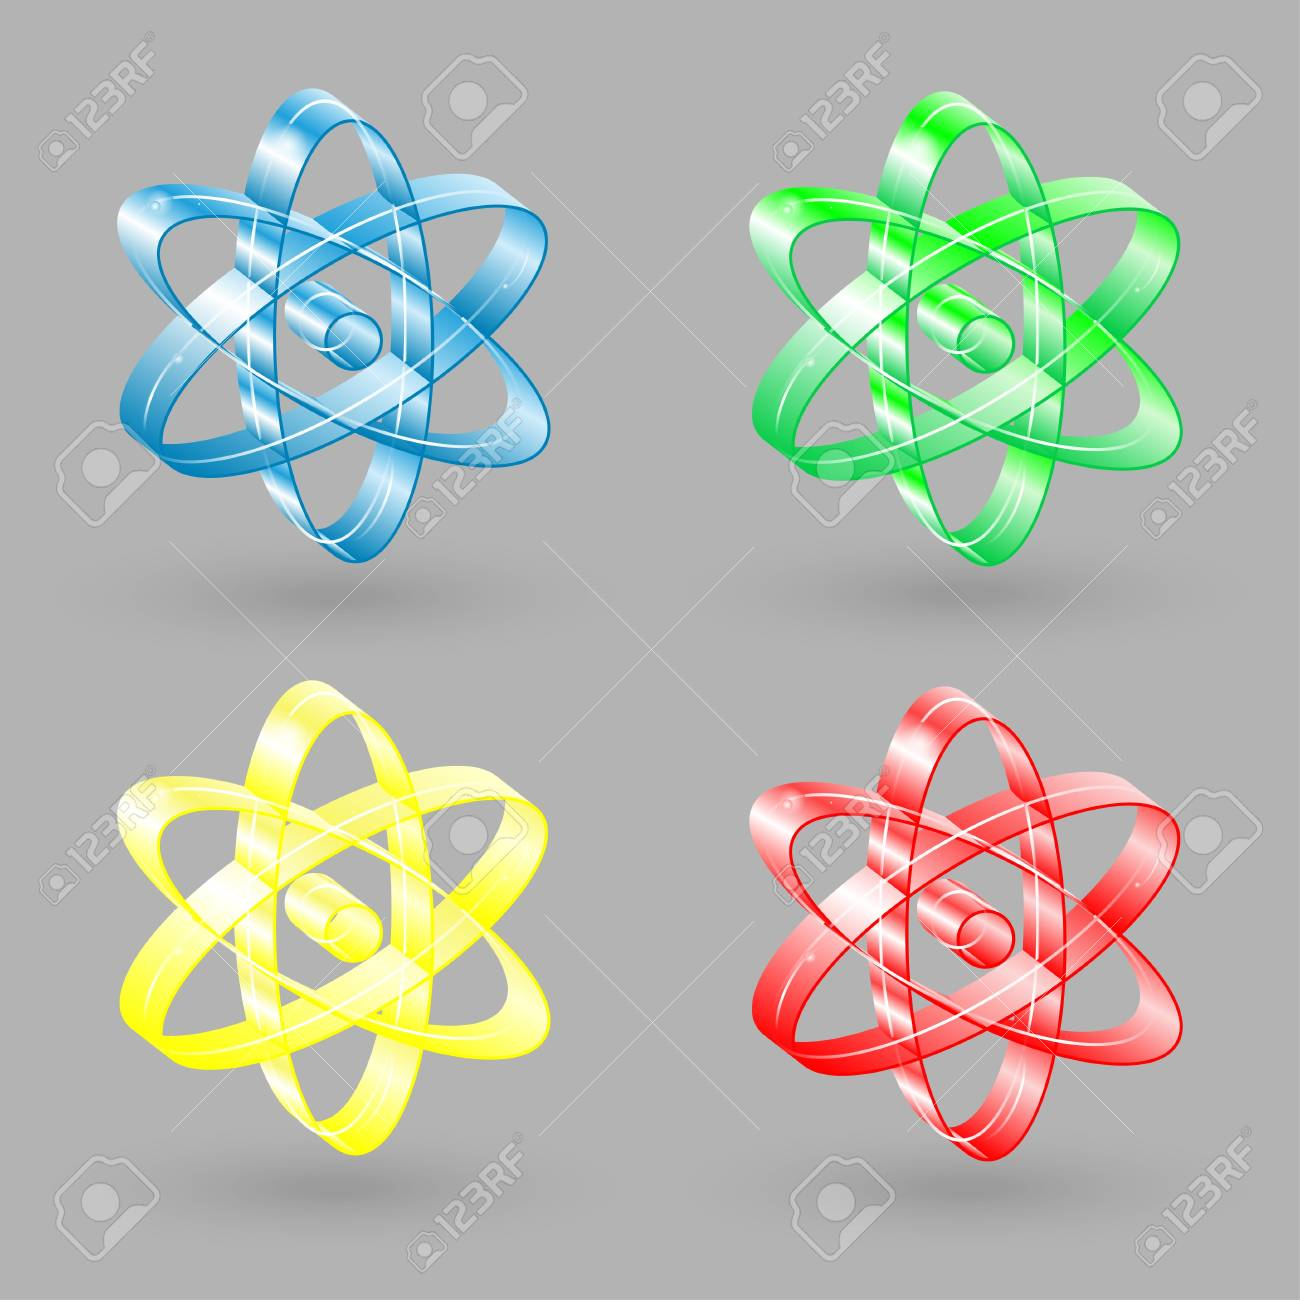 A set of four icons atom. Labels of different colors. Stock Vector - 22143406